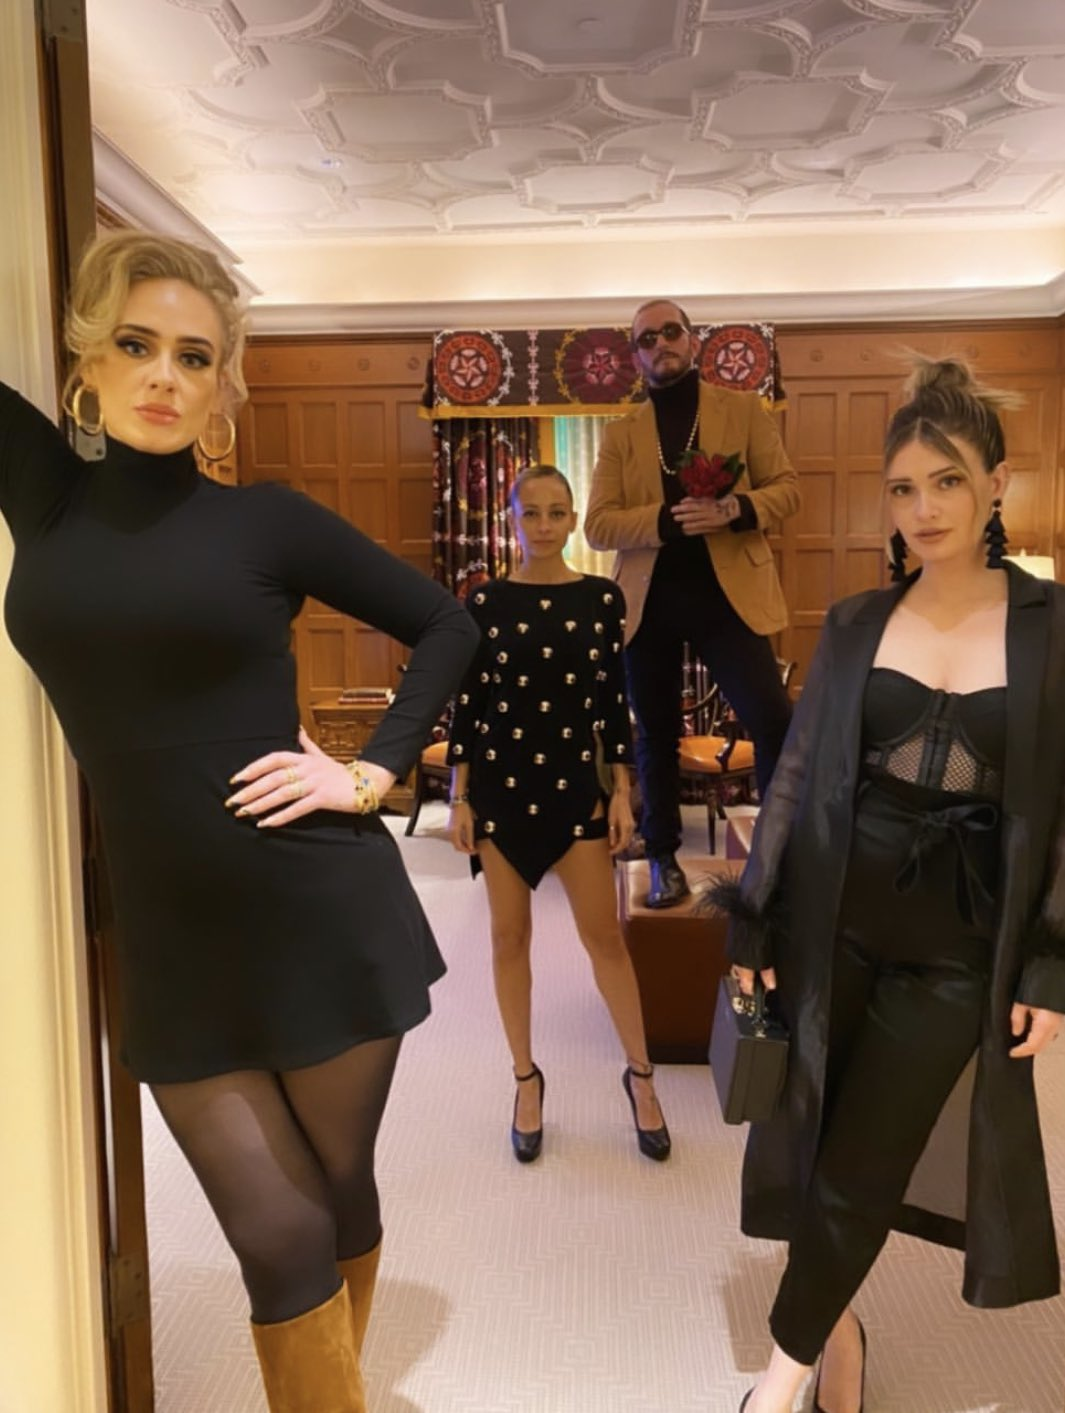 Adele and friends striking a pose